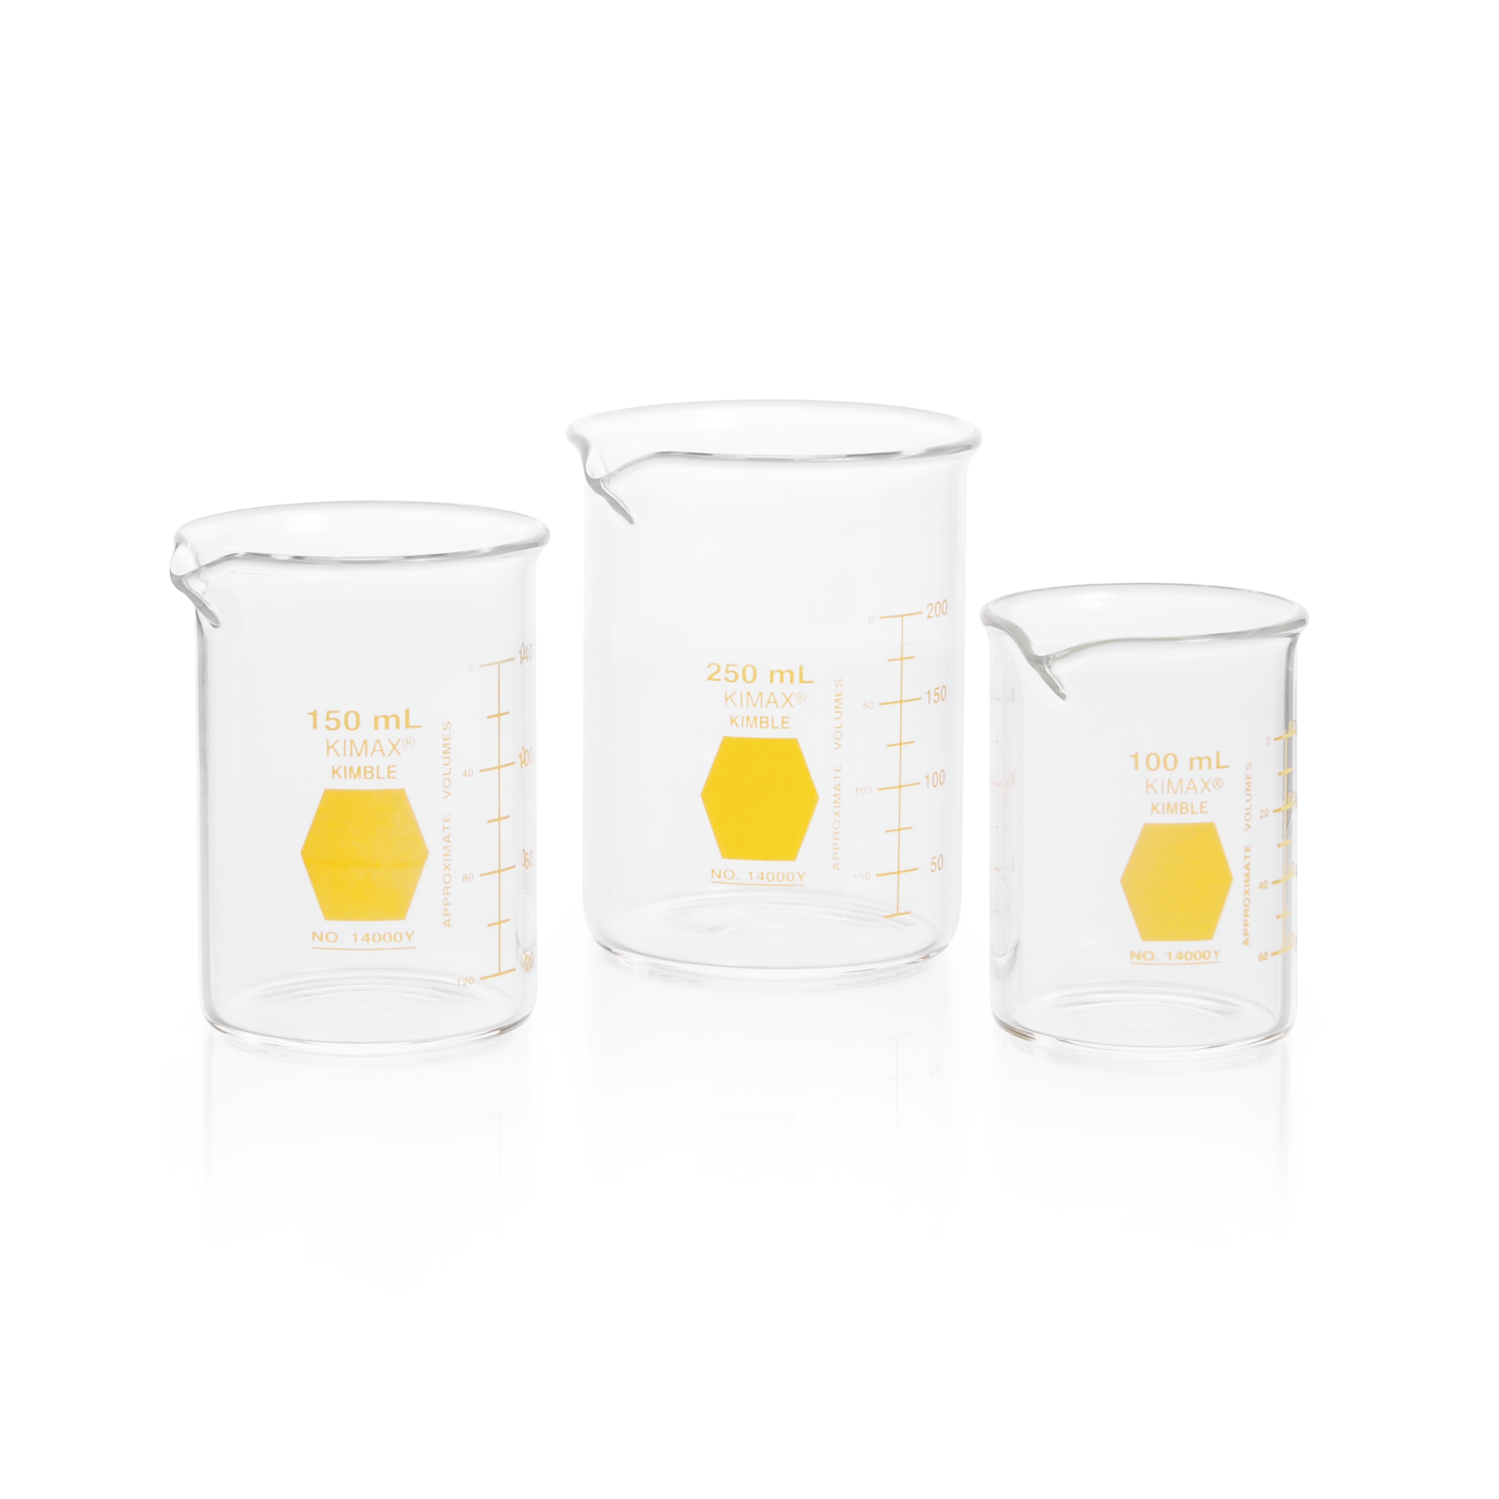 KIMBLE® KIMAX® Colorware Beaker, low form, with spout, Yellow, 1000 mL